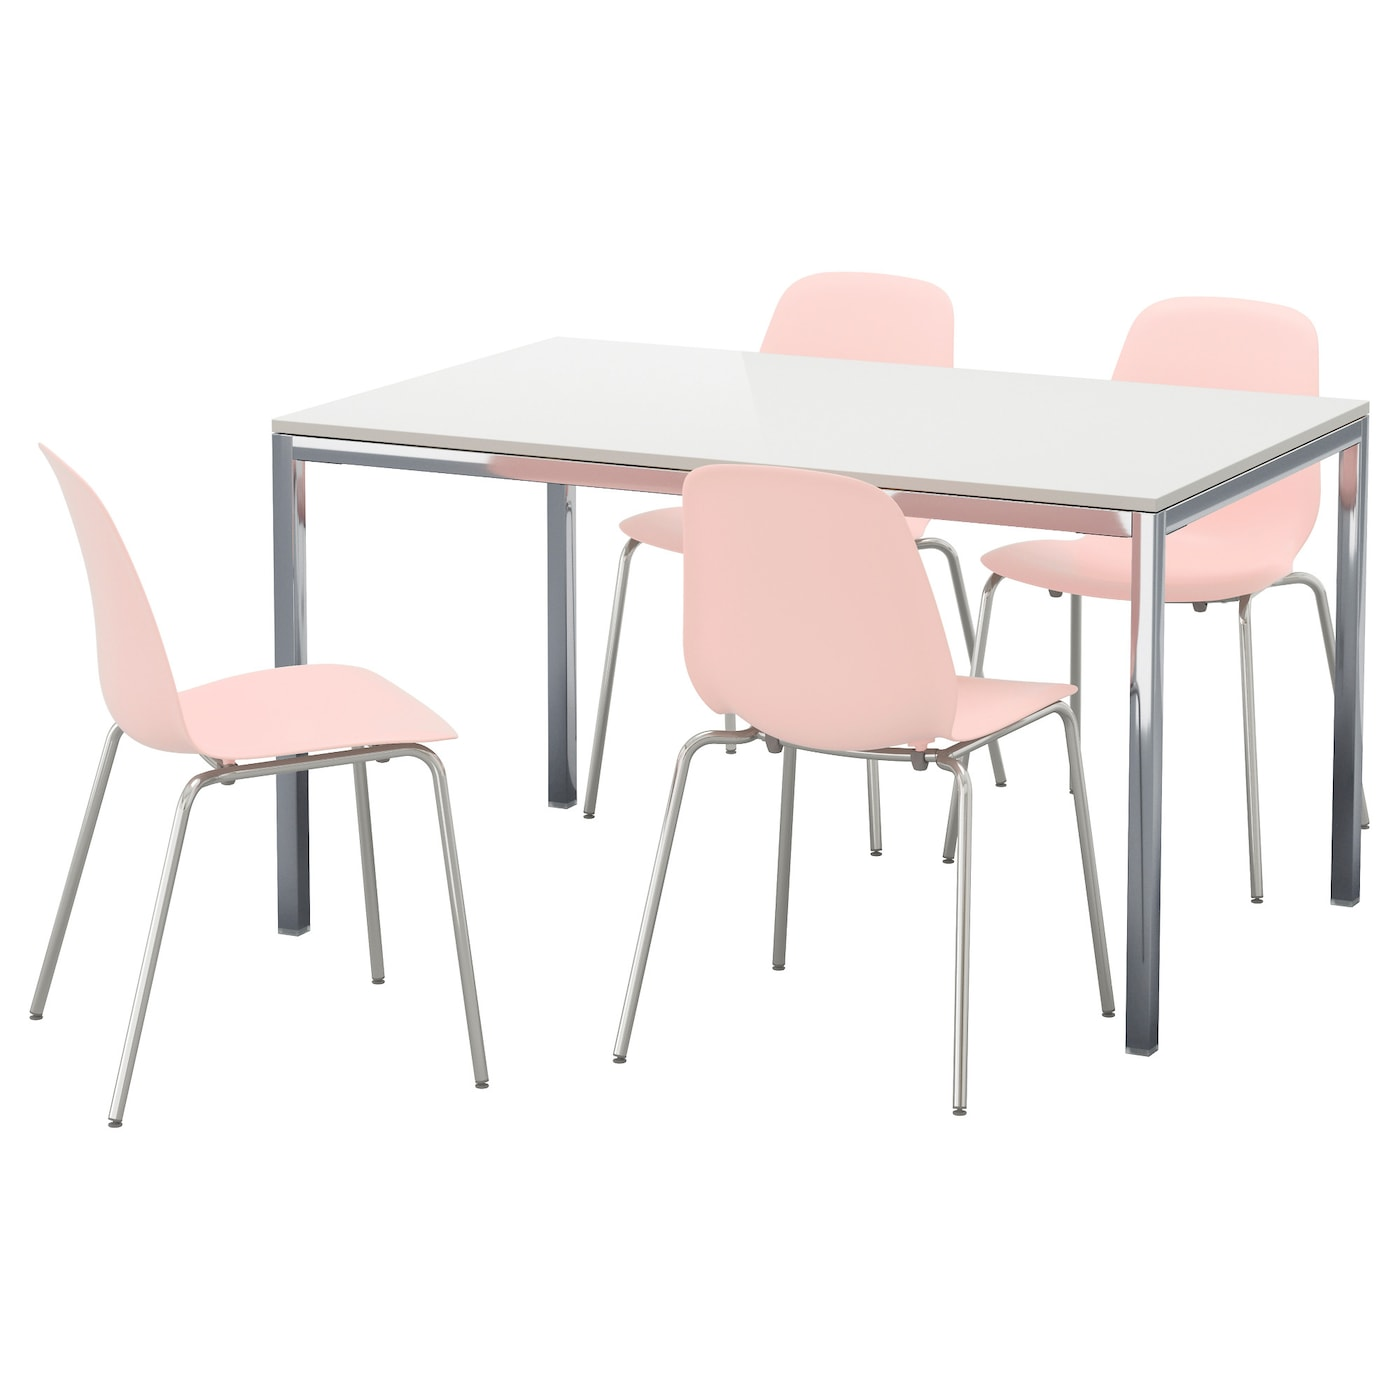 Torsby leifarne table and 4 chairs high gloss white pink for Table ikea 4 99